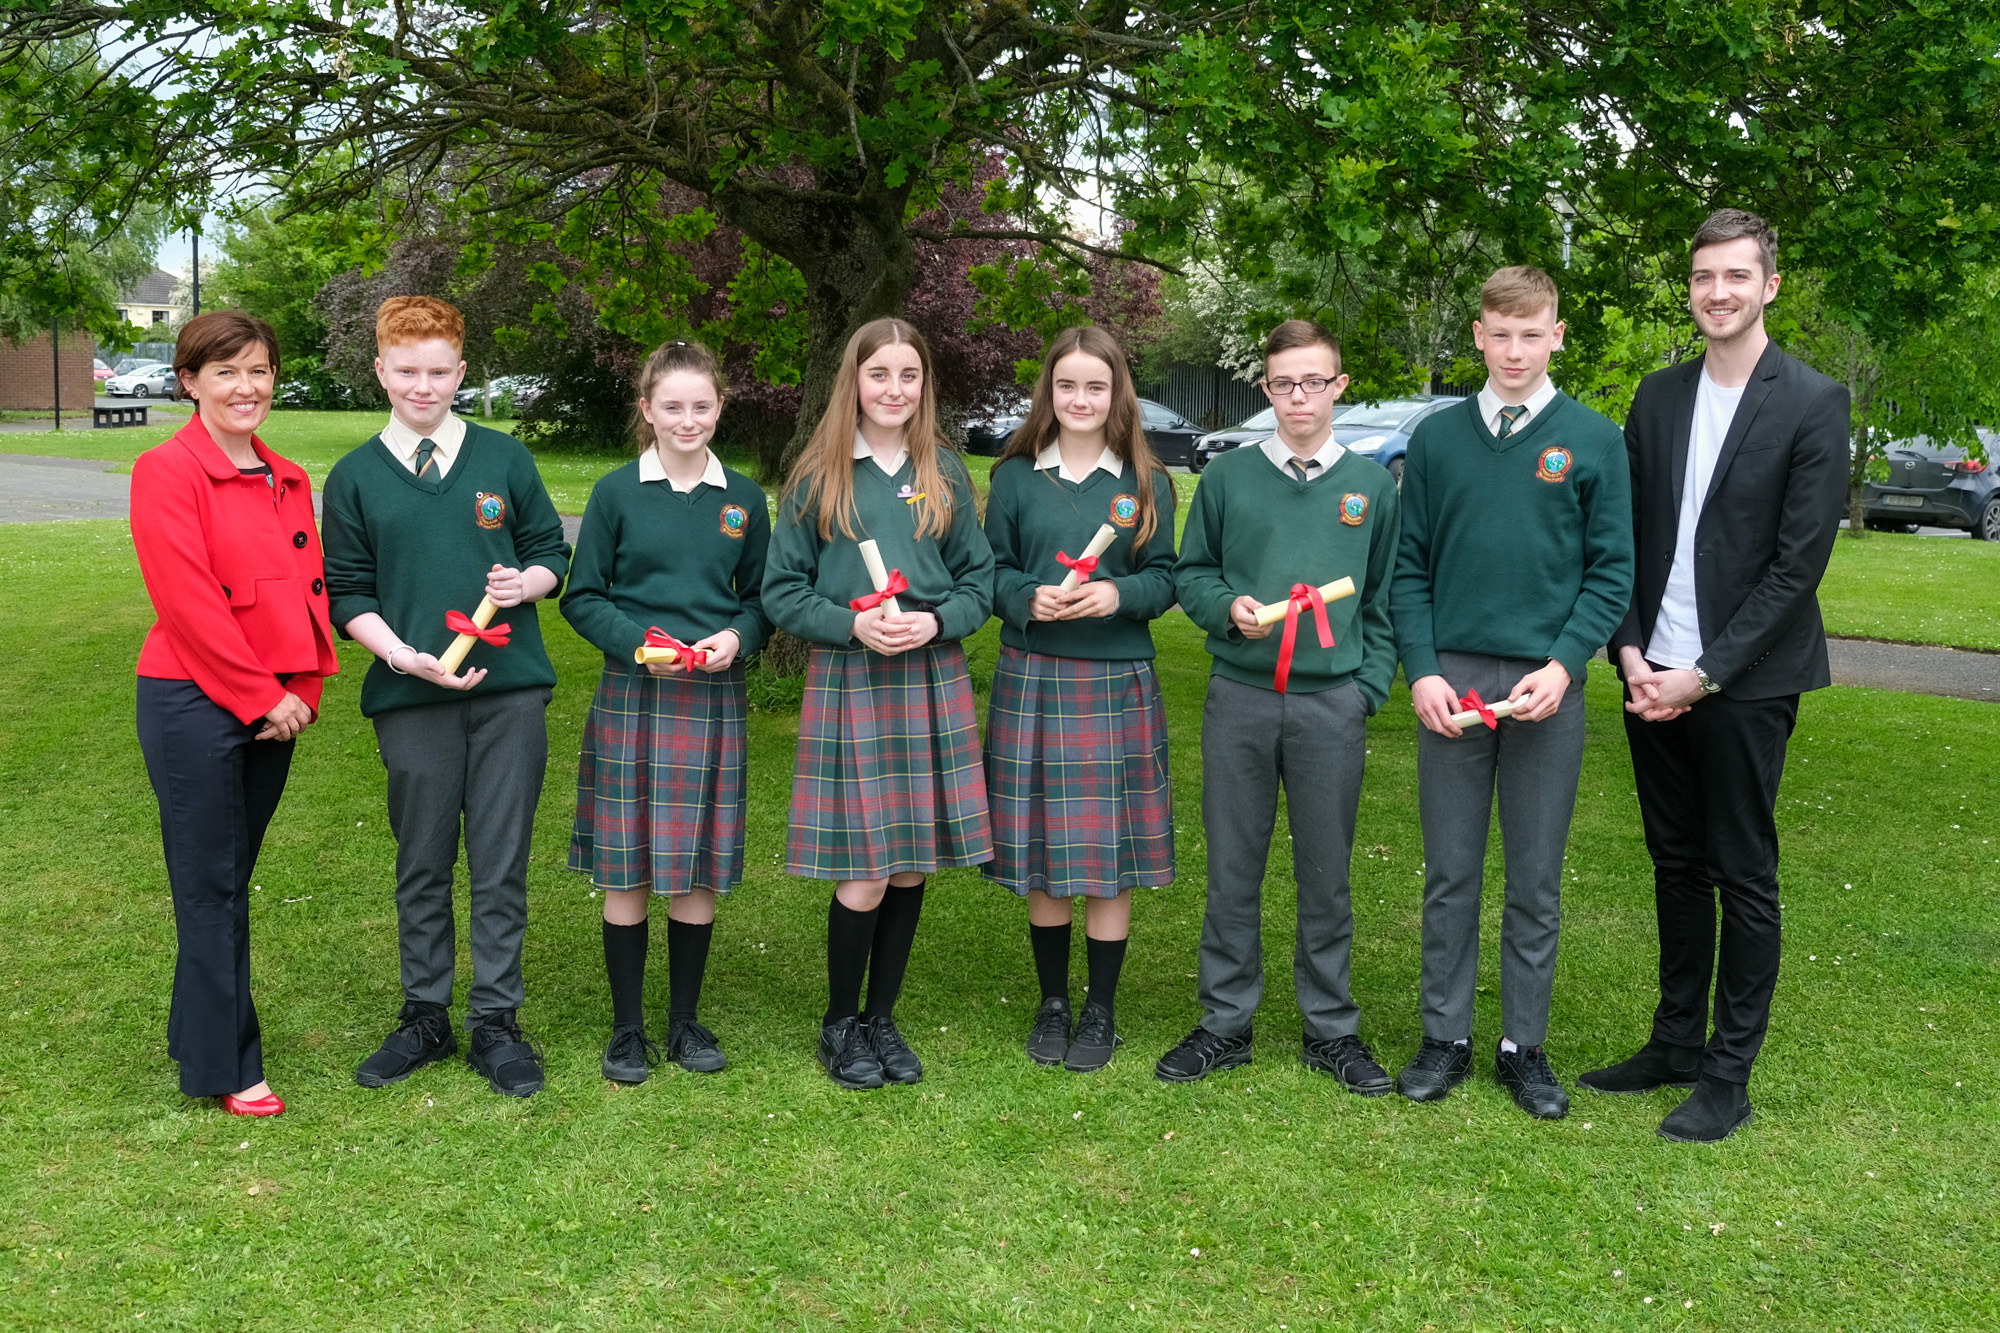 2nd Year Class Awards  Louise Doran, Oisin Dolan, Sophie Browne, Shauna Mooney, Kerrymay Prenderville, Tadhg Traynor, Conall Henson, Evan Kirwan